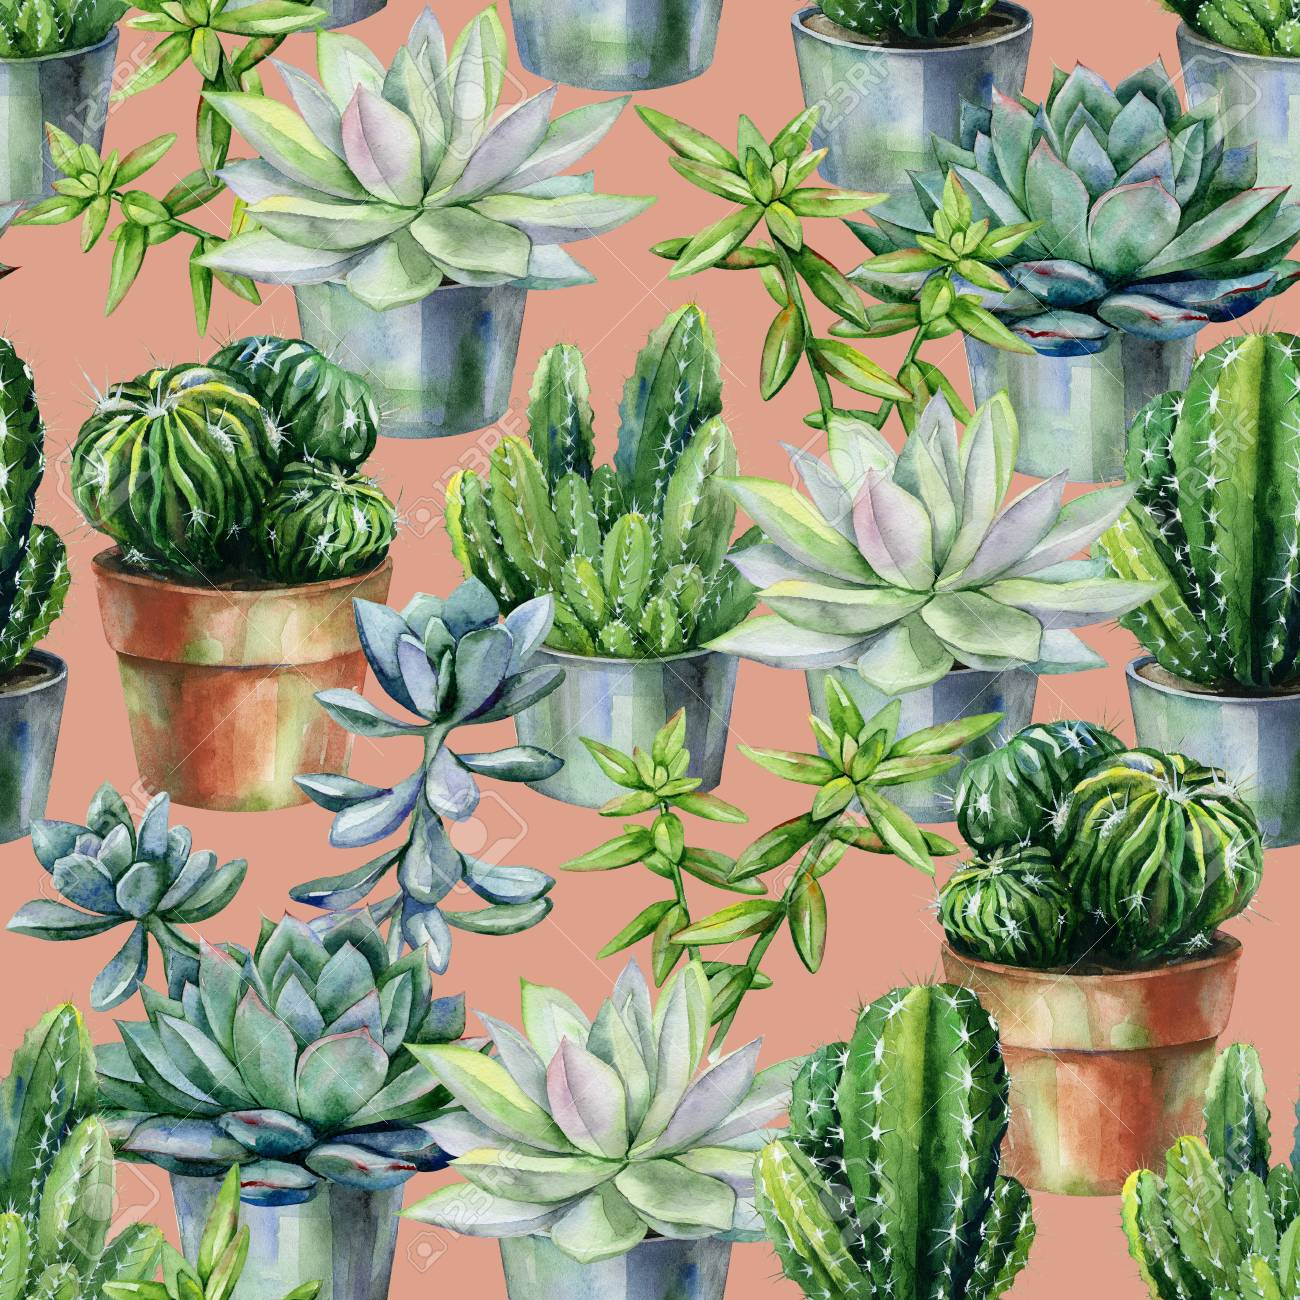 Seamless Watercolor Pattern With Cactus And Succulents In Pots Stock Photo Picture And Royalty Free Image Image 110161617